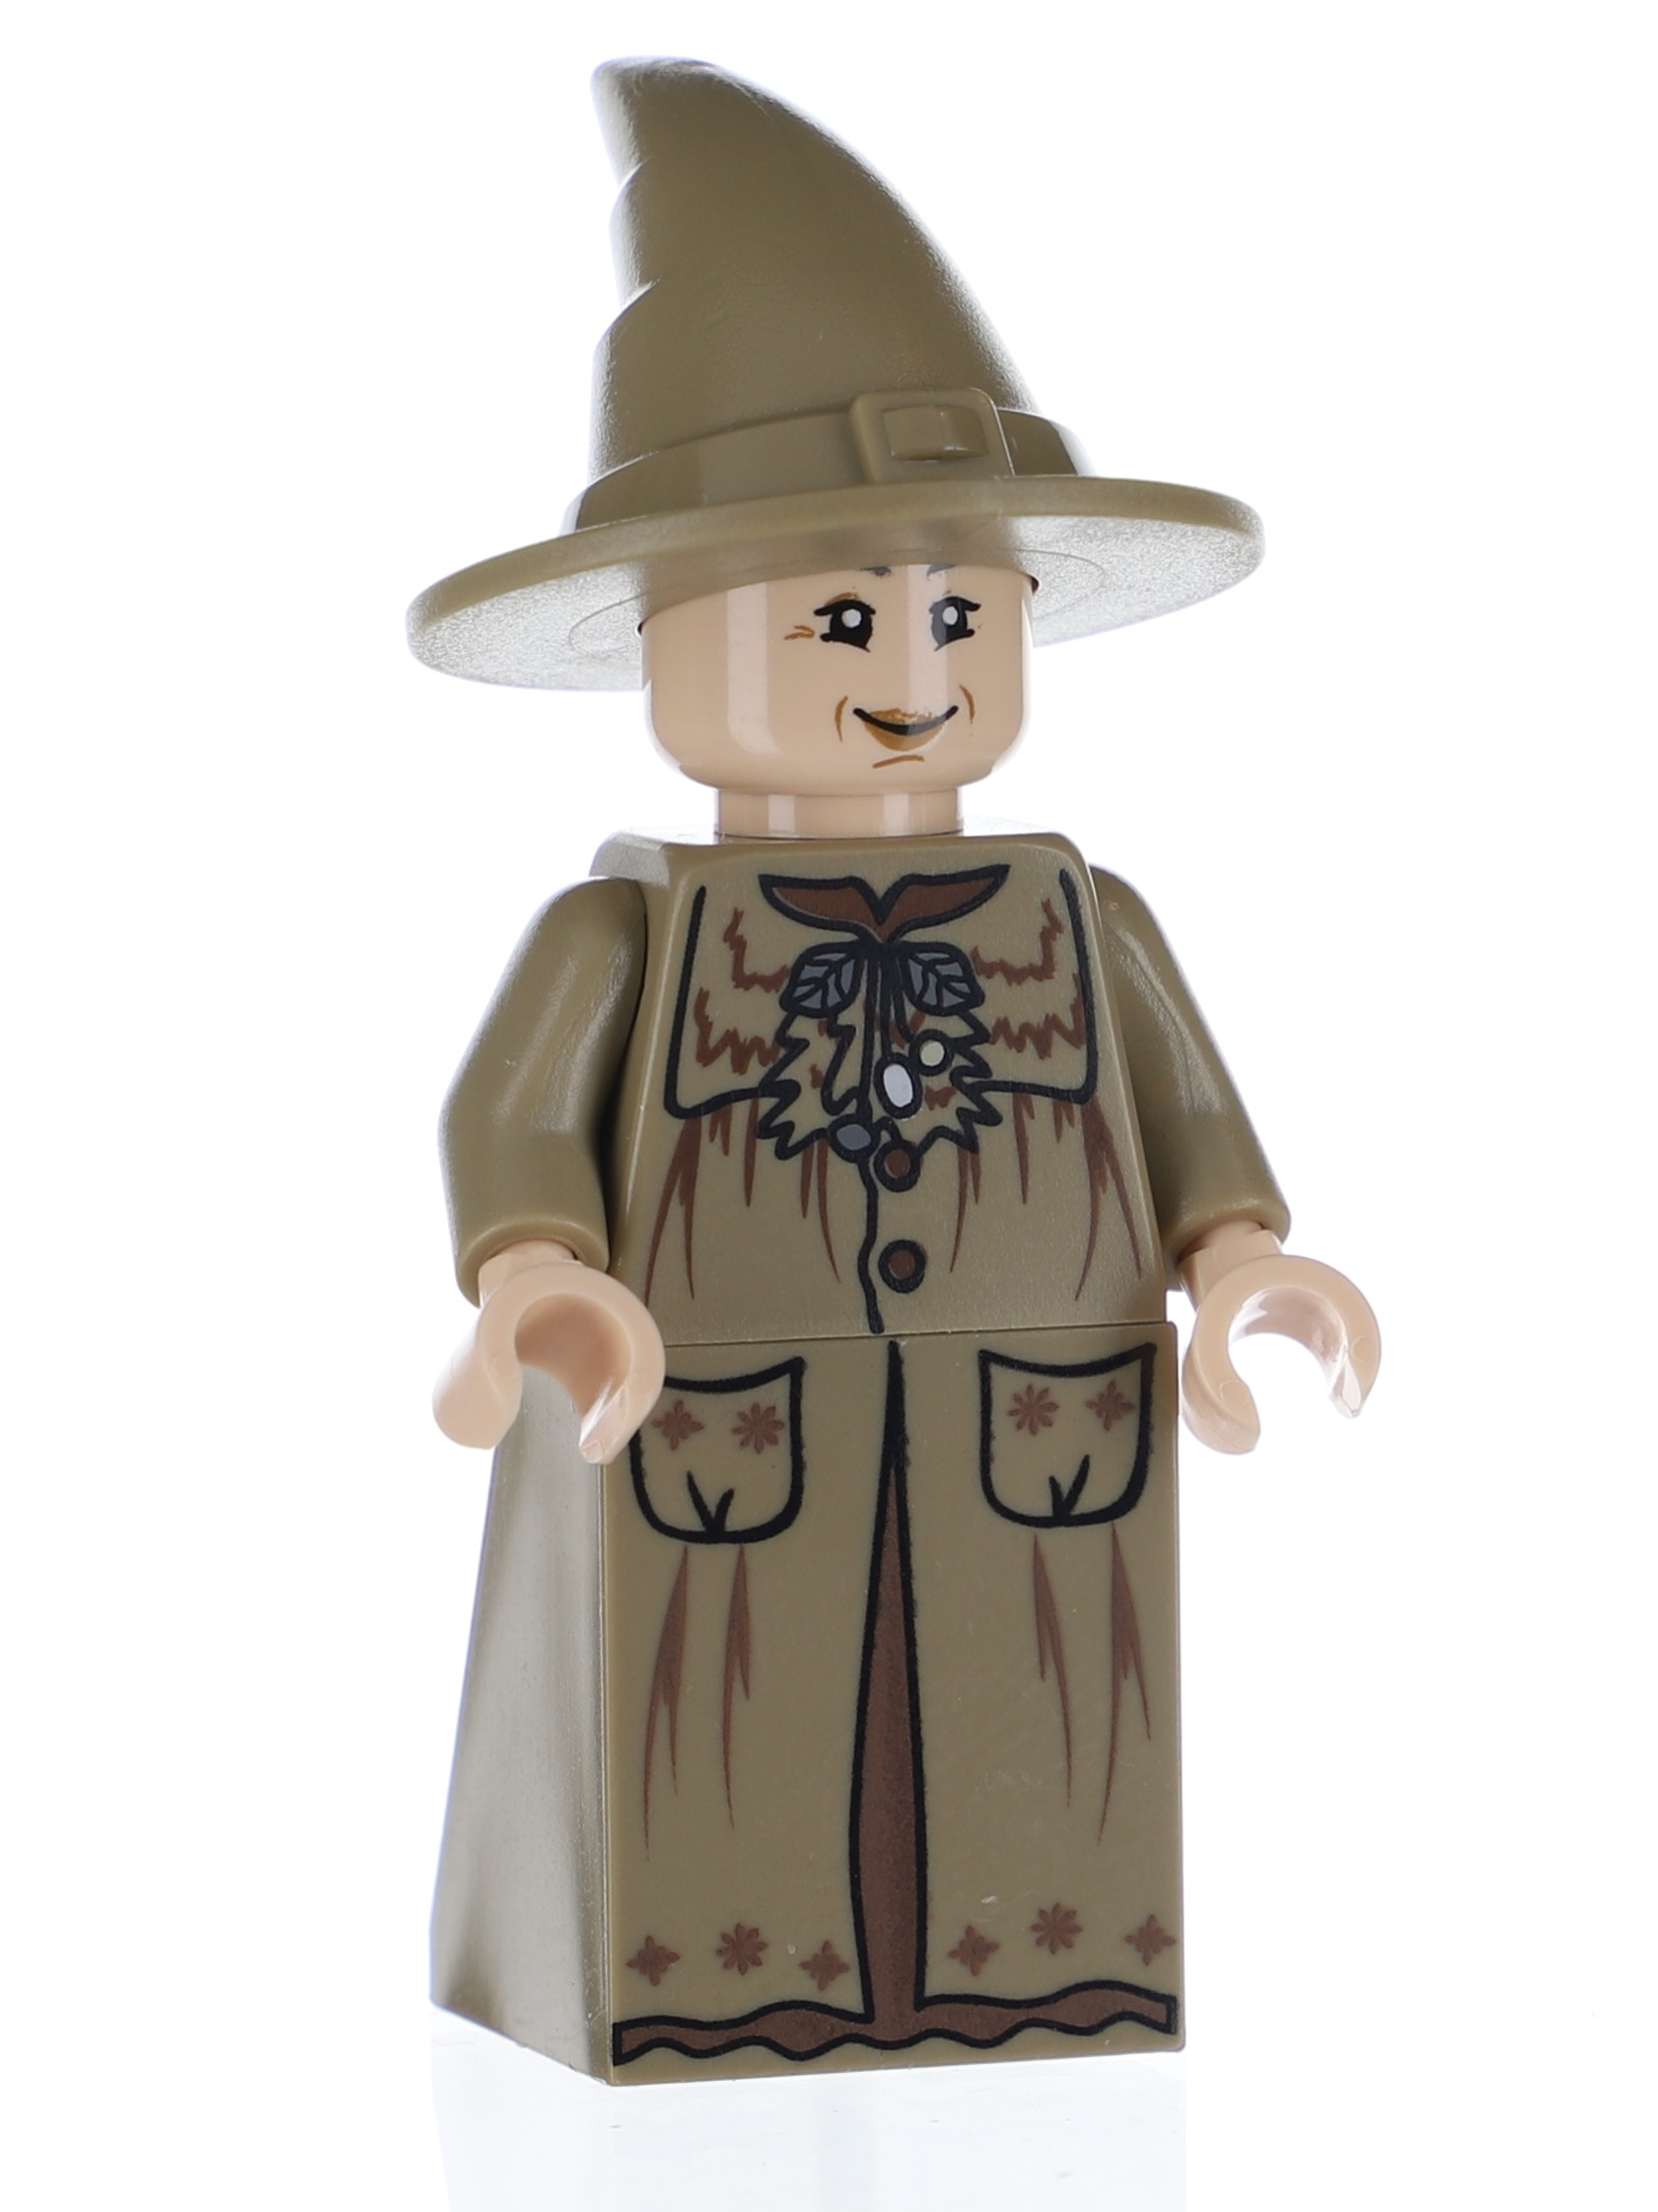 PROFESSOR SPROUT LEGO MINIFIG HARRY POTTER MINI FIGURE